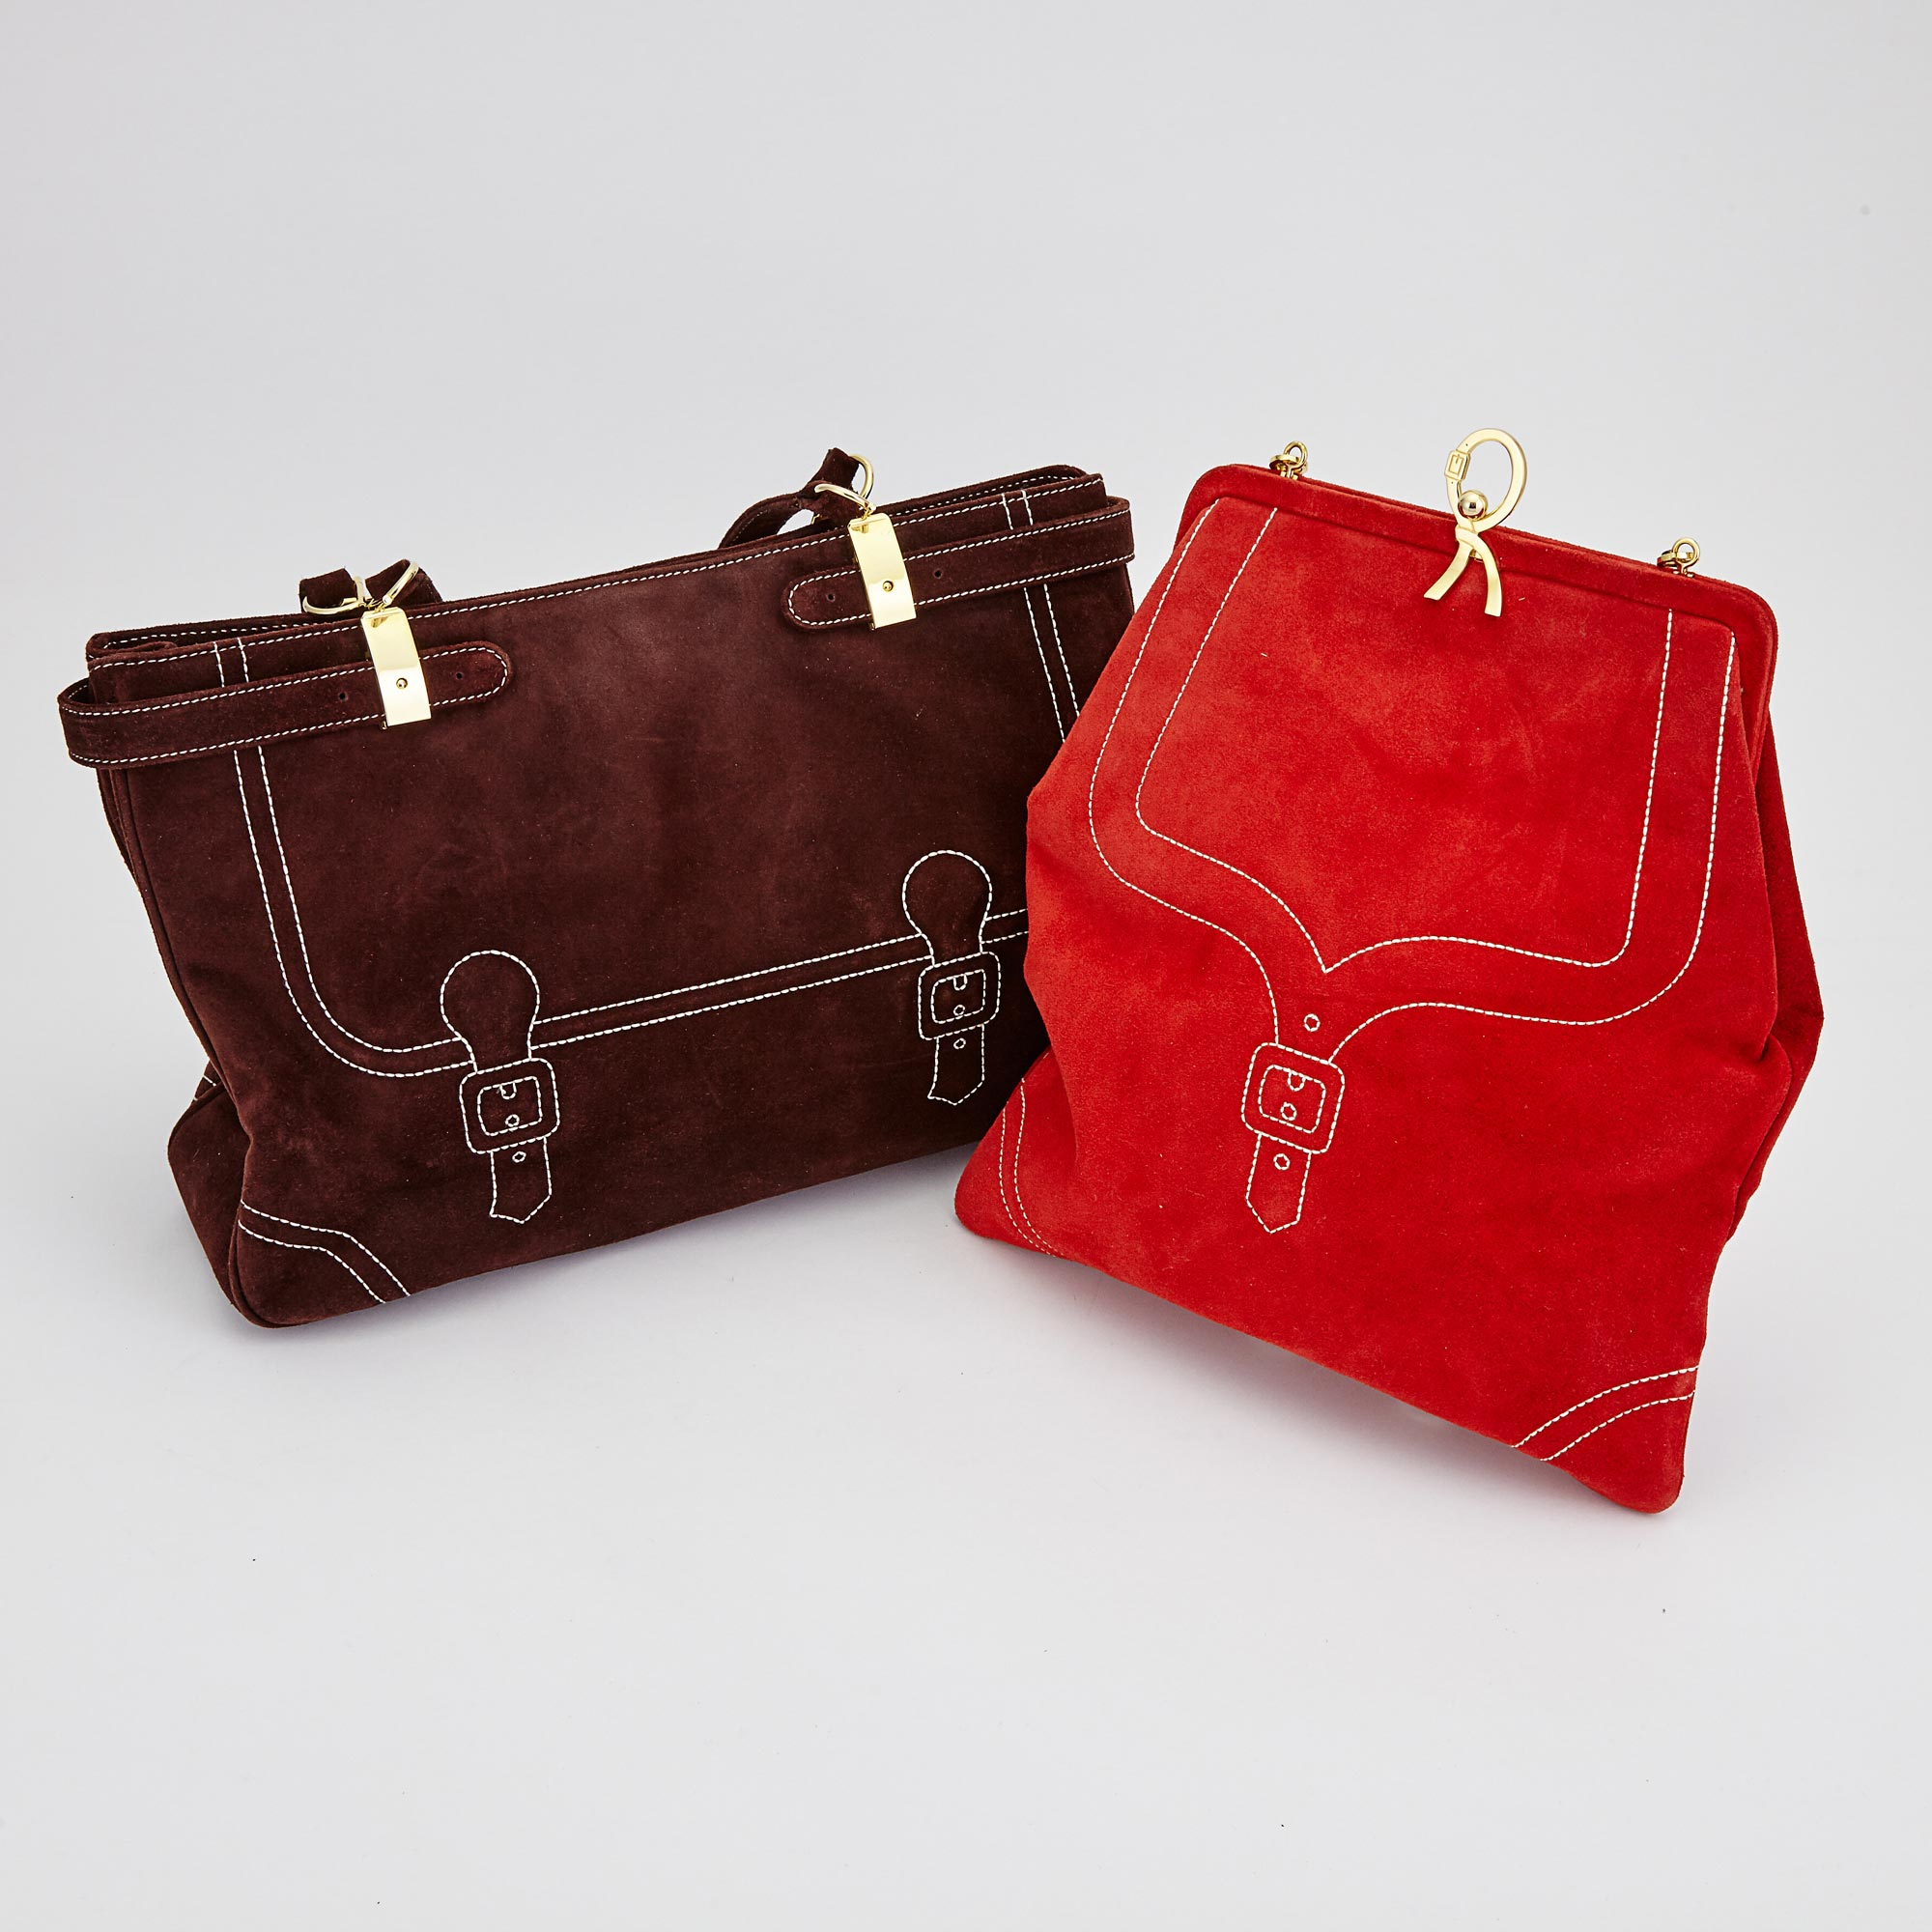 Lot image - Two Red and Brown Suede Handbags, Roberta di Camerino